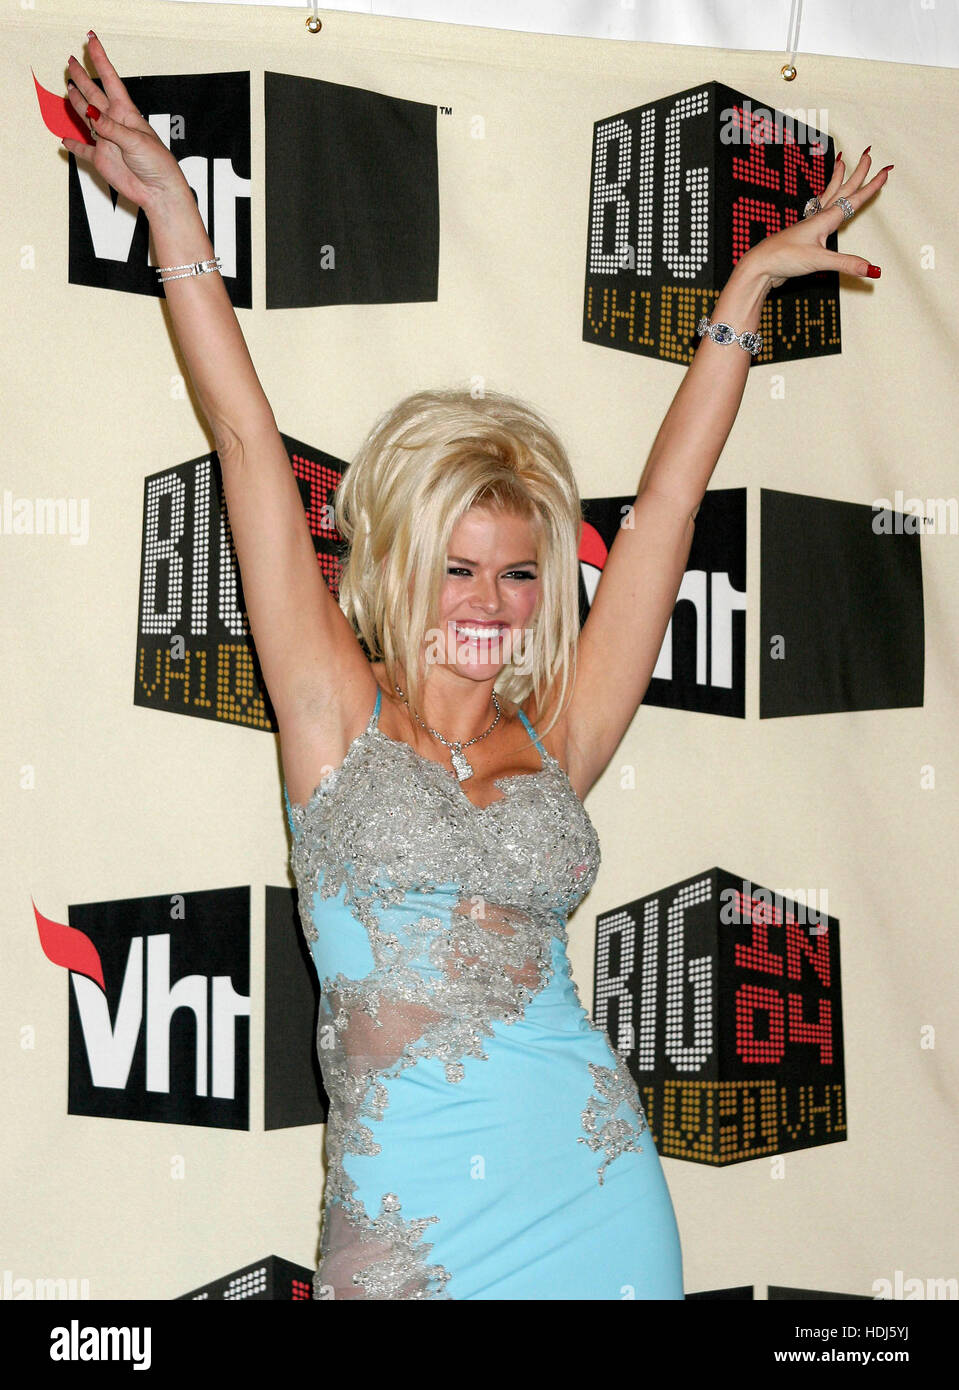 Anna Nicole Smith backstage at the VH-1 'Big in 04'  taping at the Shrine Auditorium in Los Angeles, California - Stock Image